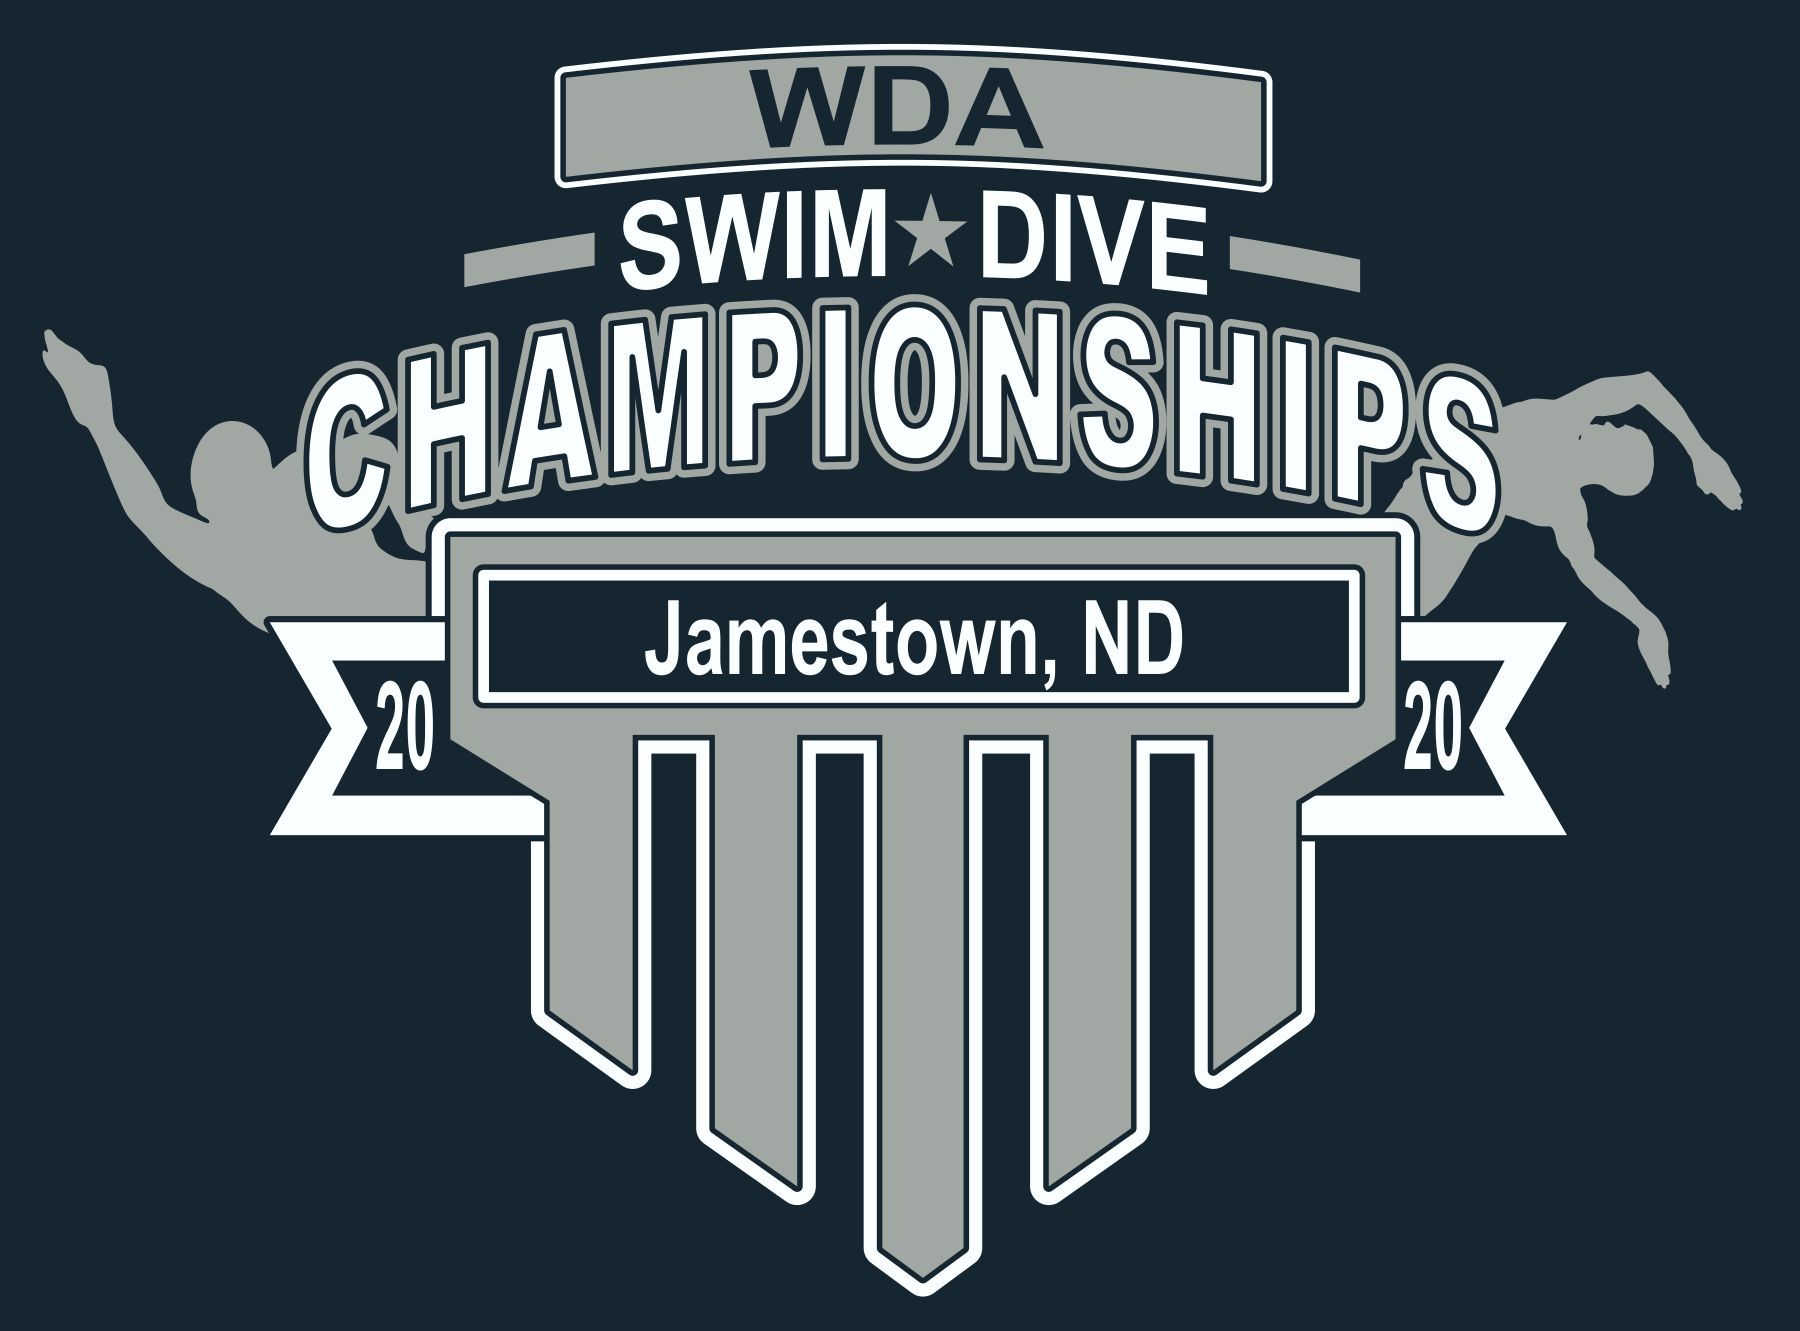 wda-swimming-20.jpg